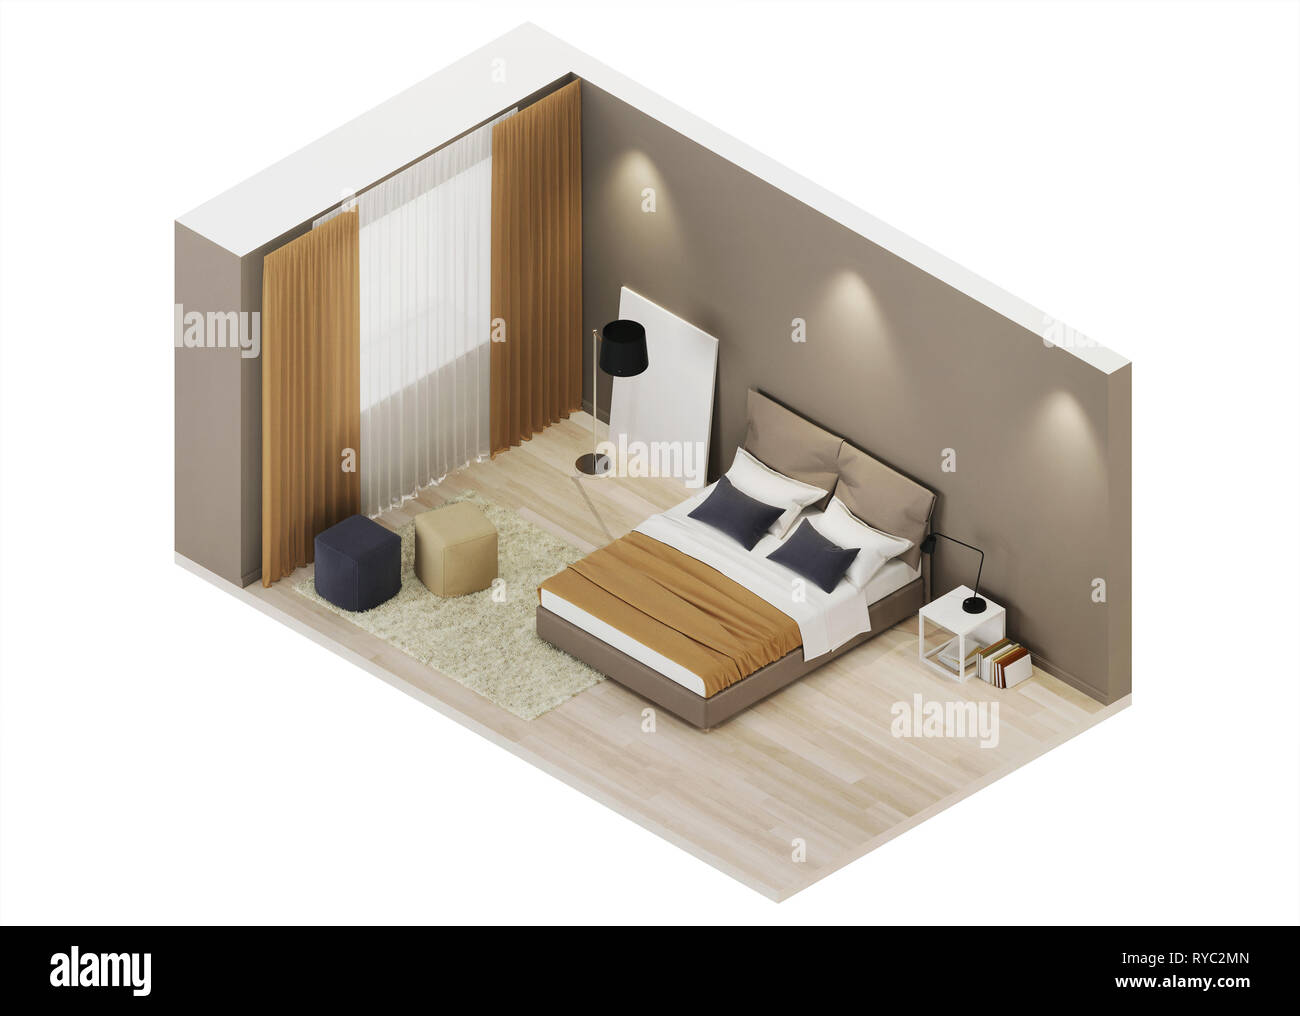 Bedroom Design In Warm Tones Orthogonal Projection View From Above